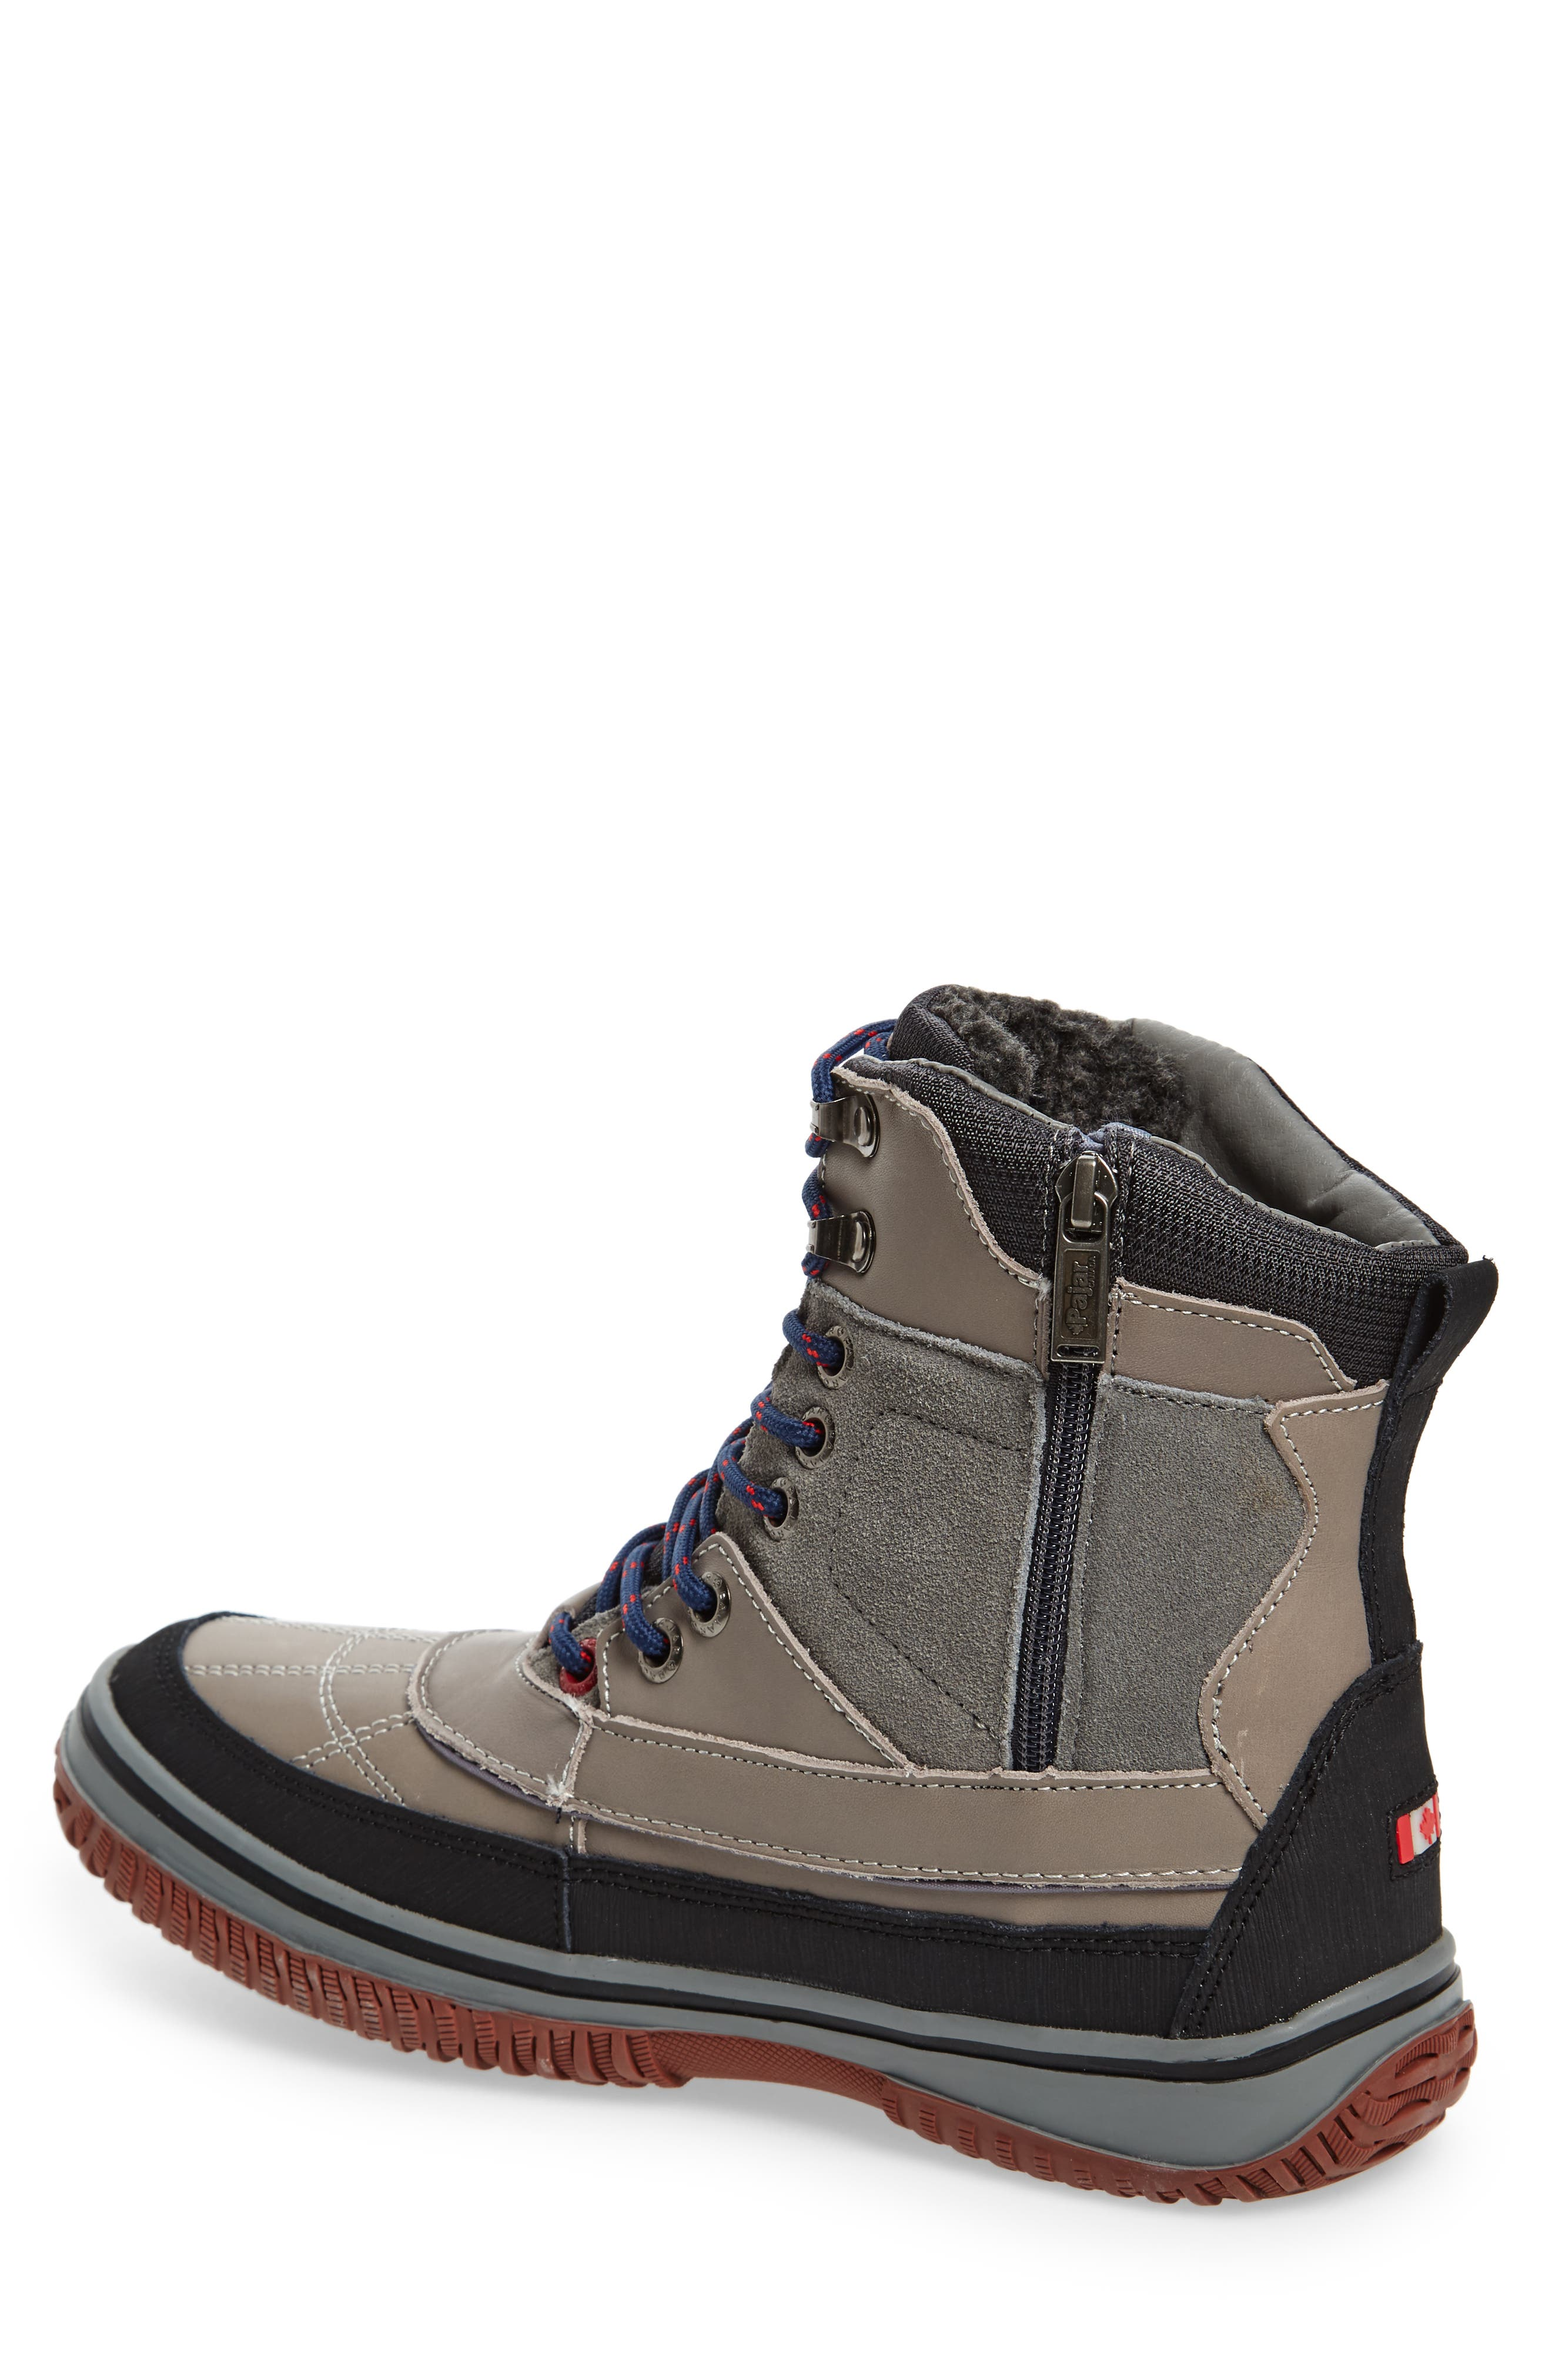 Gaspar Waterproof Winter Boot,                             Alternate thumbnail 2, color,                             GREY LEATHER